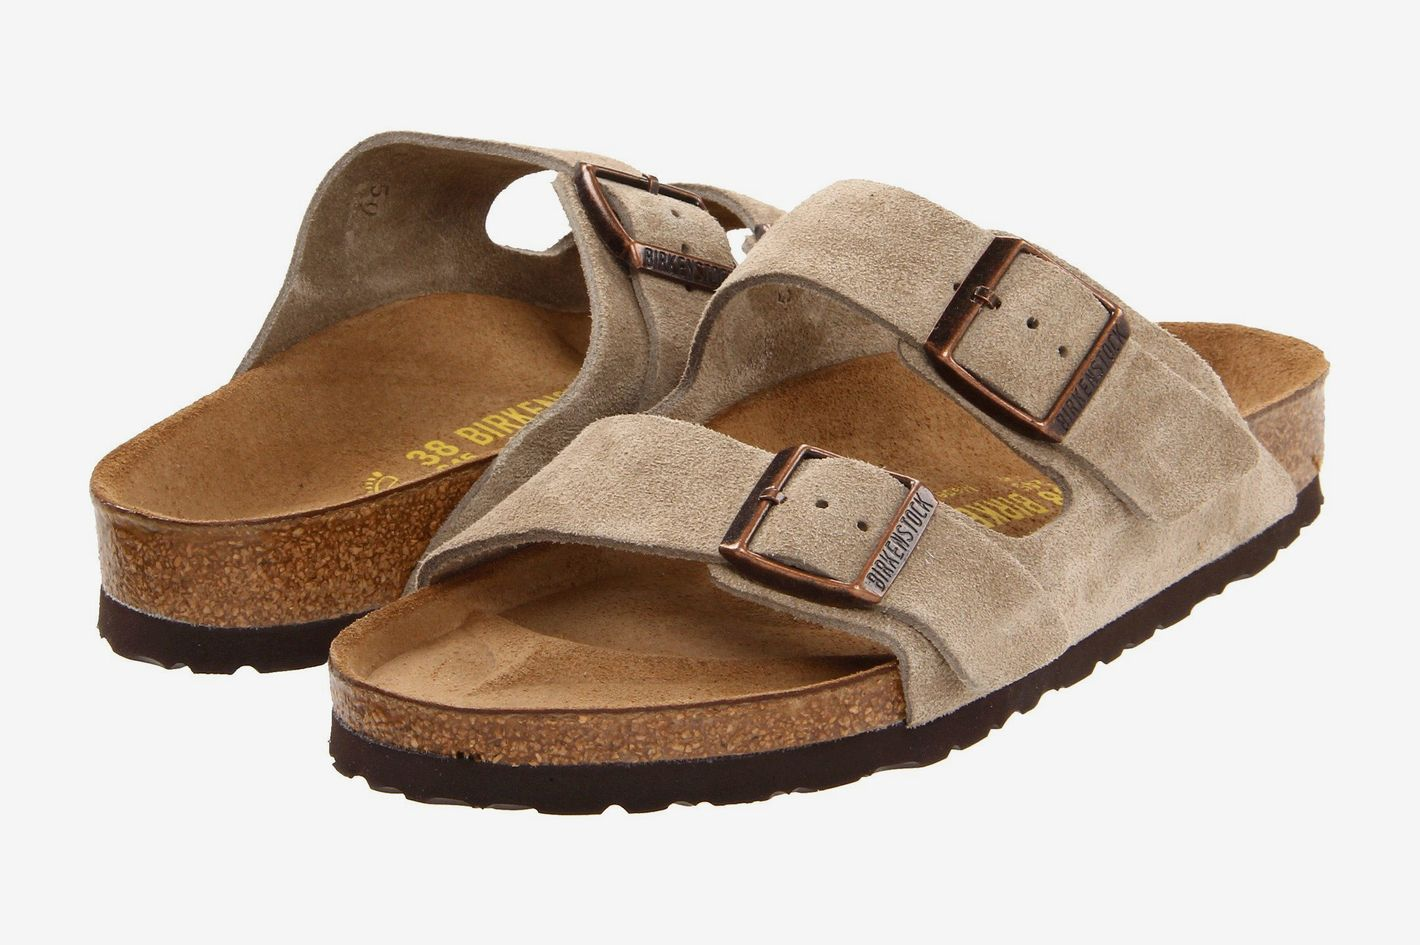 e6041e9be238 27 Birkenstocks for Men and Women 2018